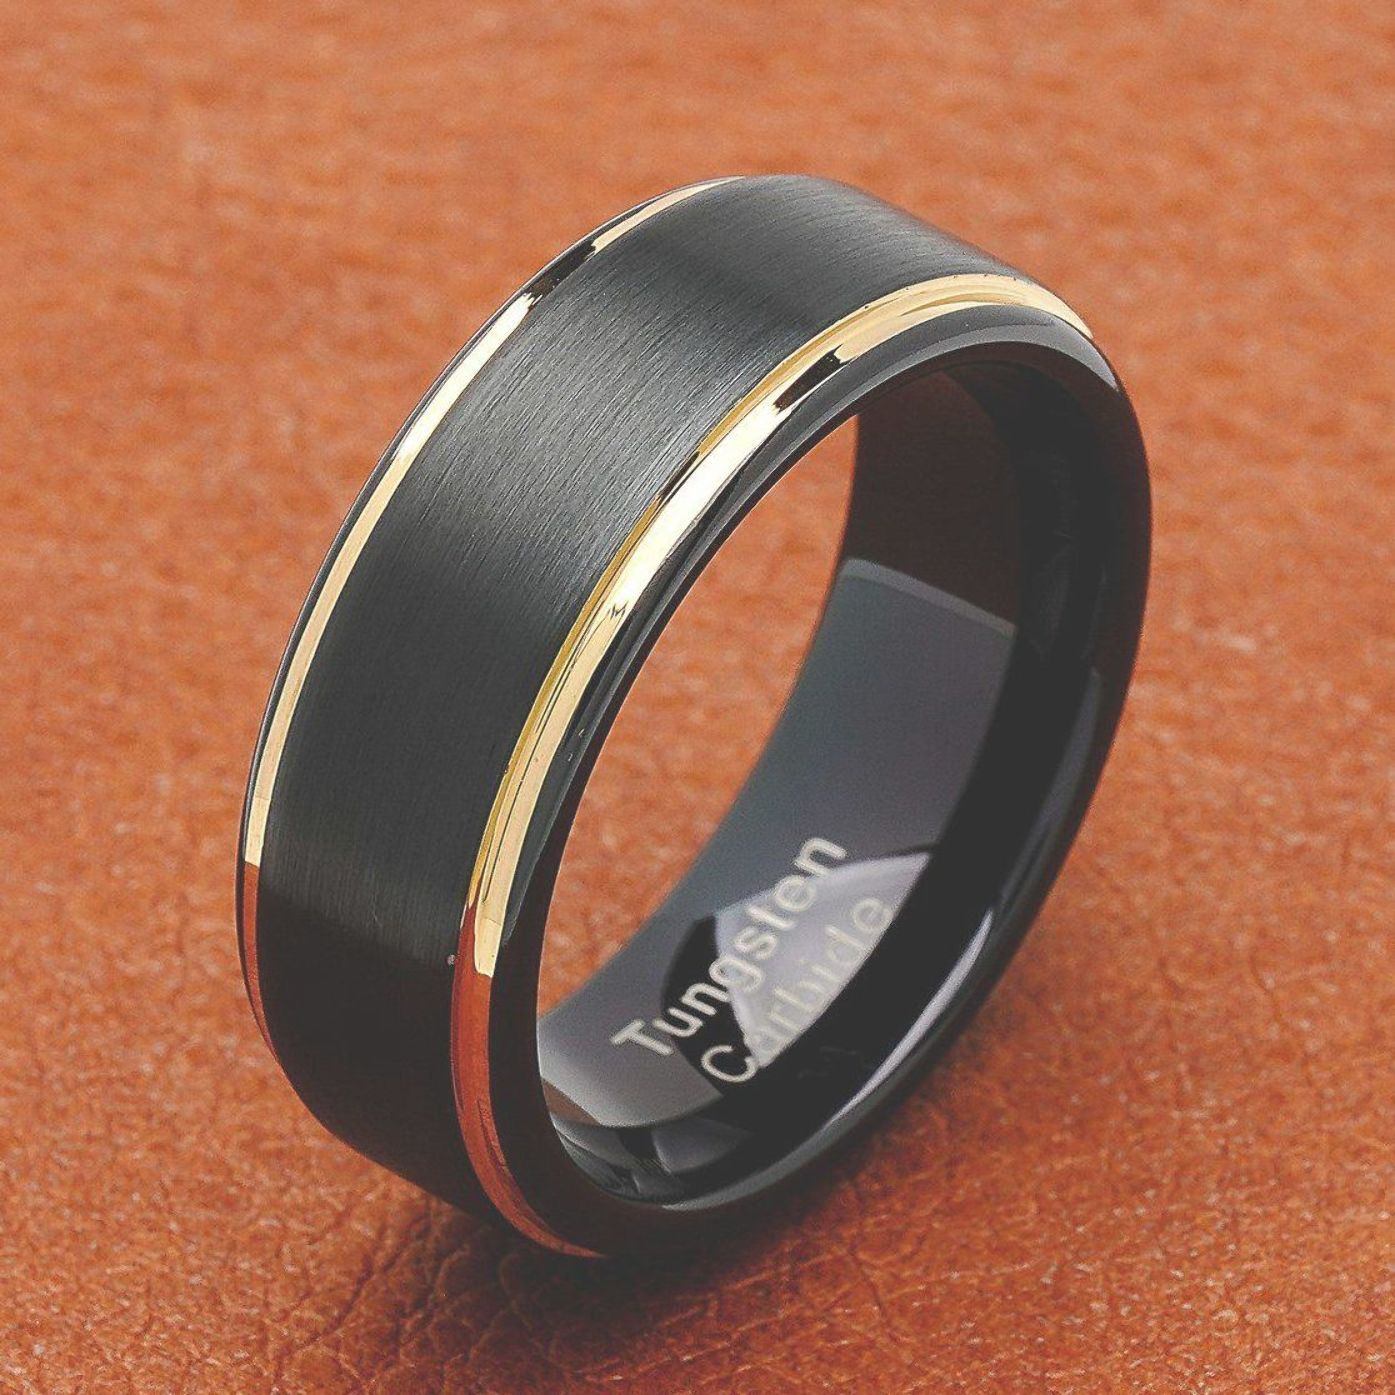 100s Jewelry Tungsten Rings For Men Two Tone Black Gold Wedding Band Center Brushed Engagement Tungsten Mens Rings Mens Gold Wedding Band Black Tungsten Rings